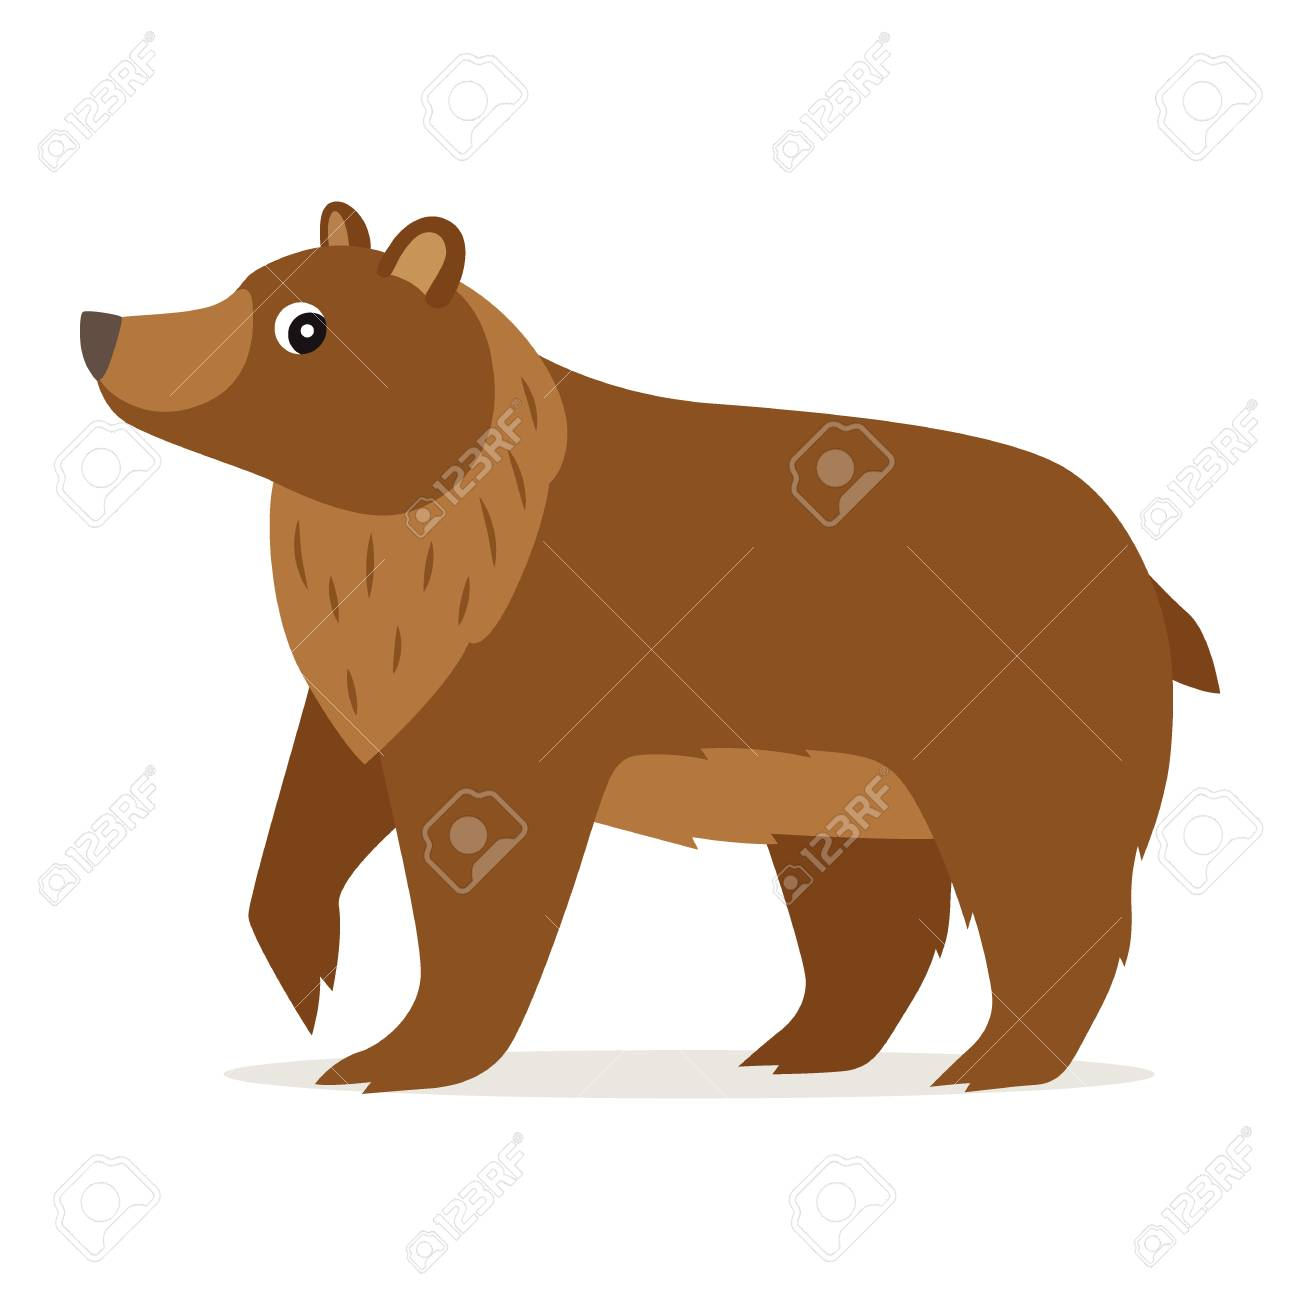 Icon of funny cute brown bear in profile isolated, forest, woodland animal, vector illustration for children book or decoration - 126629137